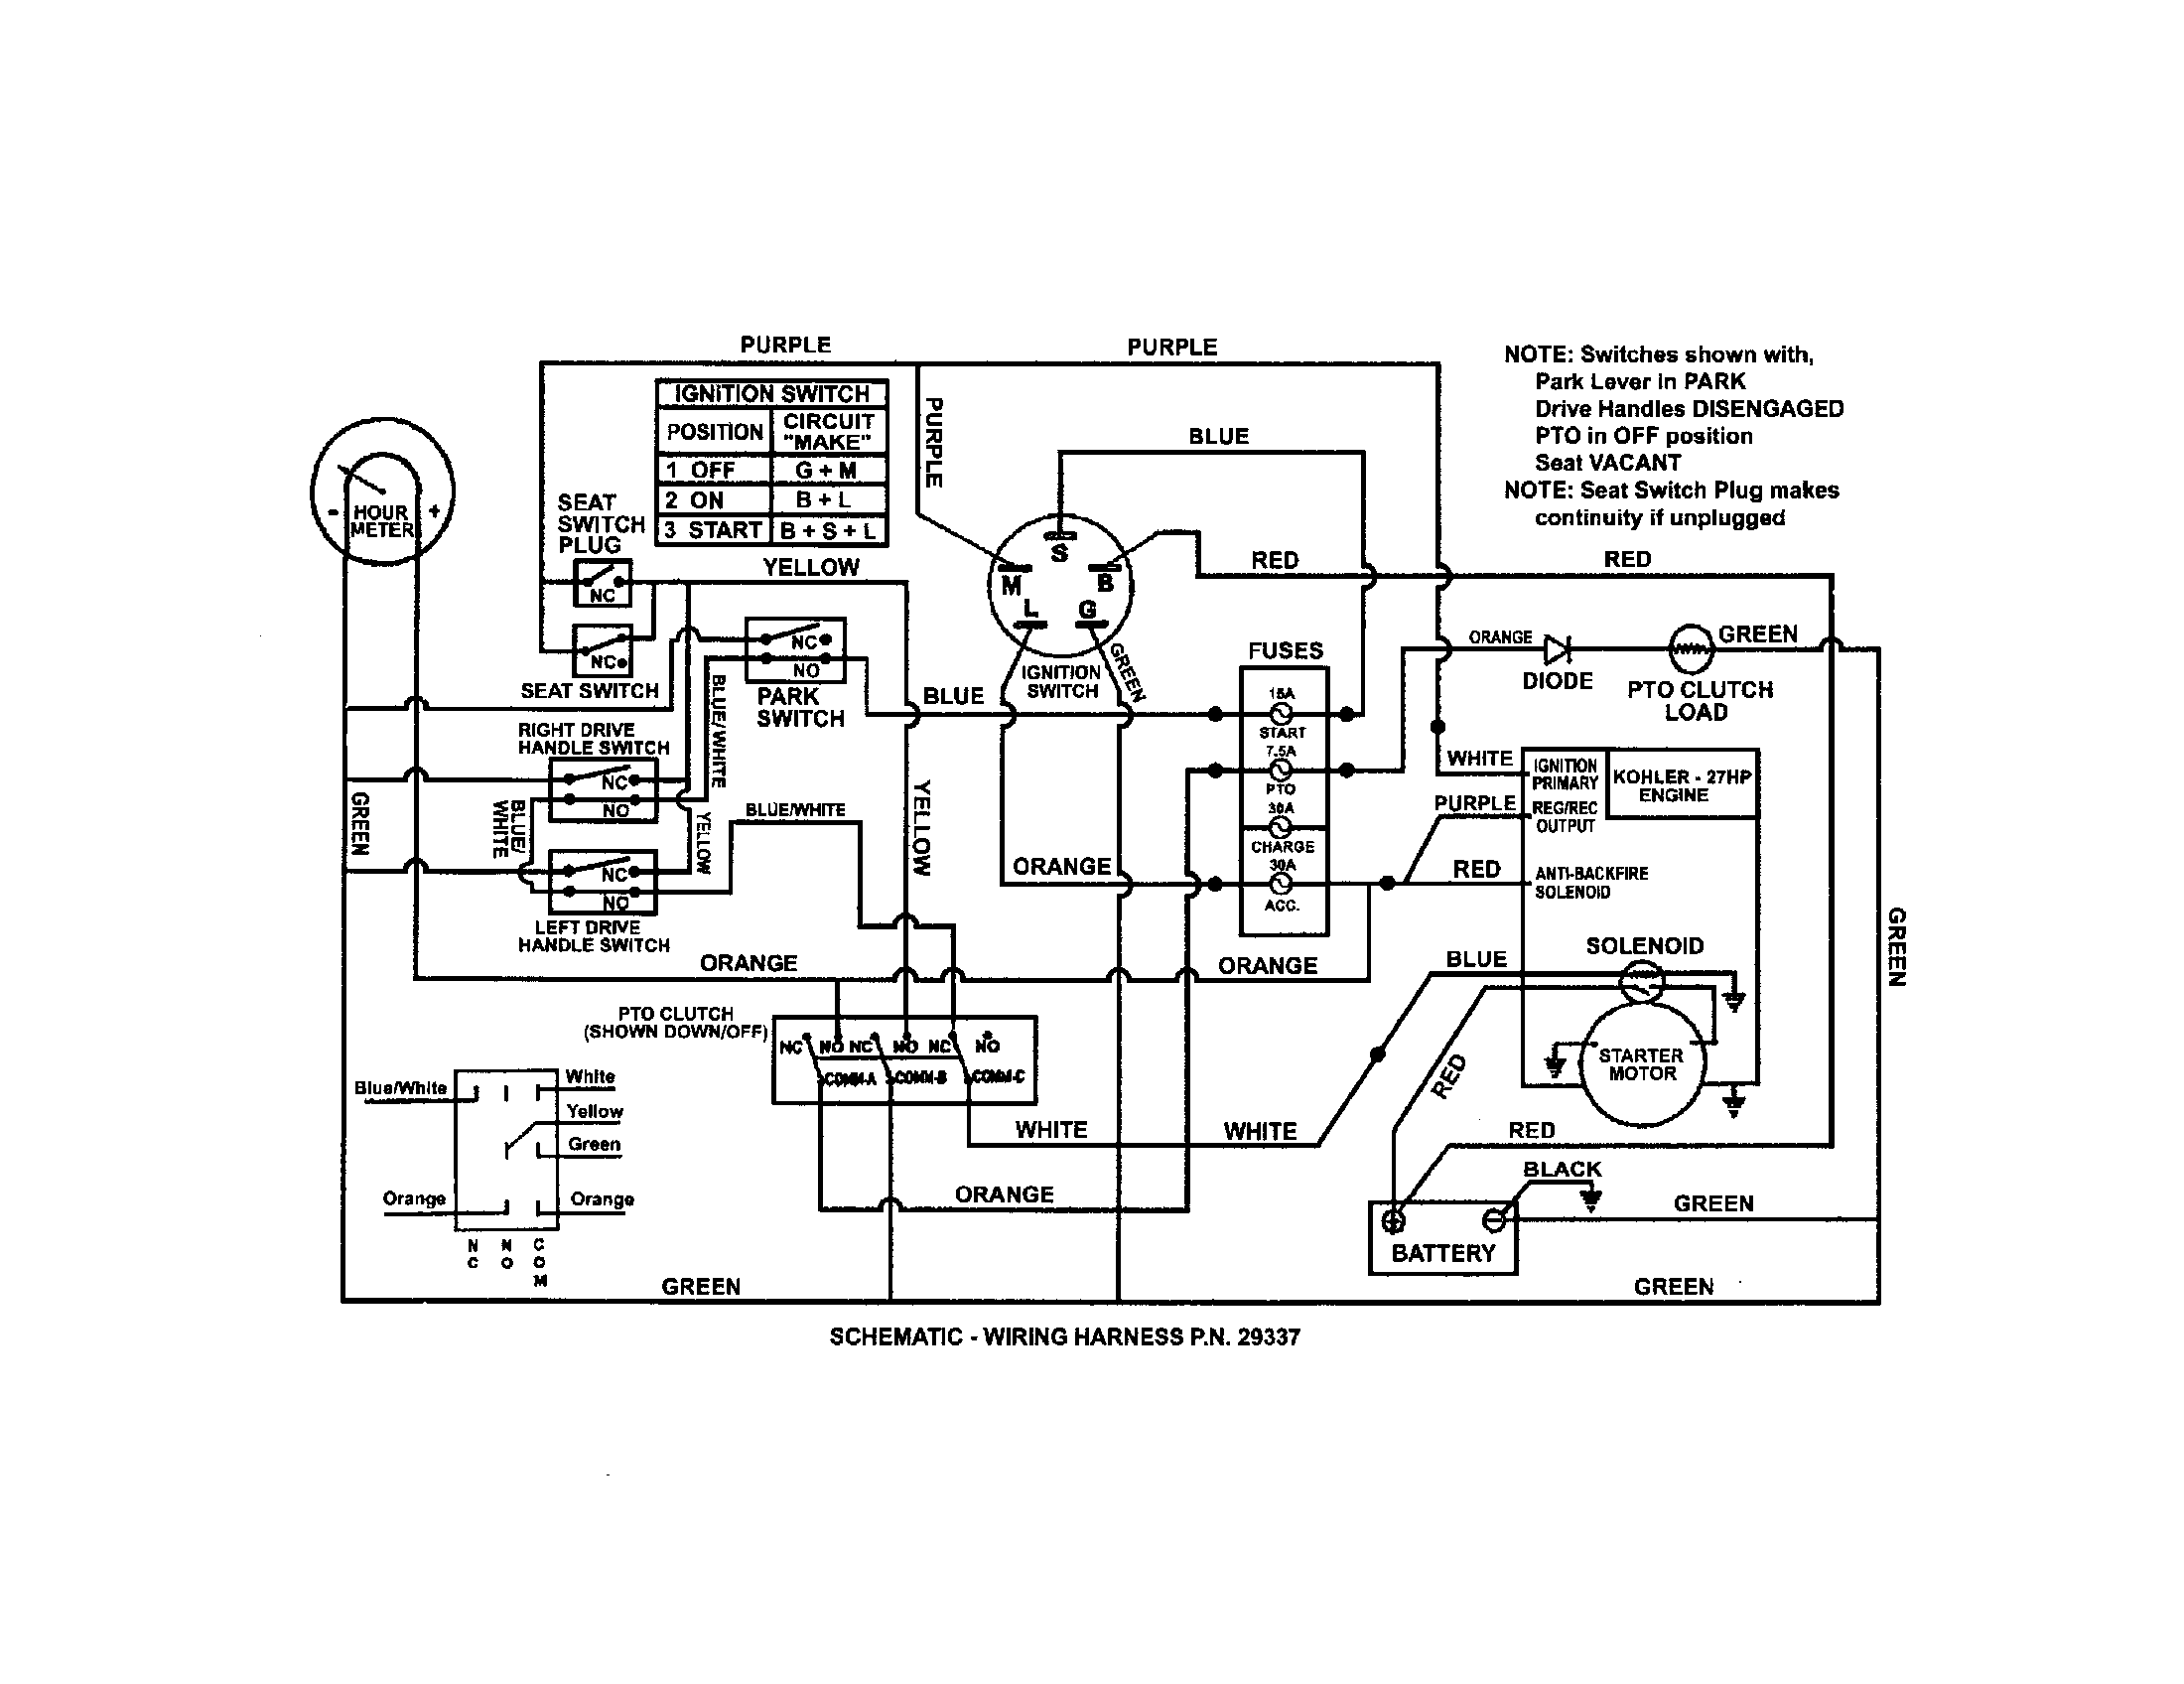 WIRING SCHEMATIC (KOHLER) Diagram & Parts List for Model